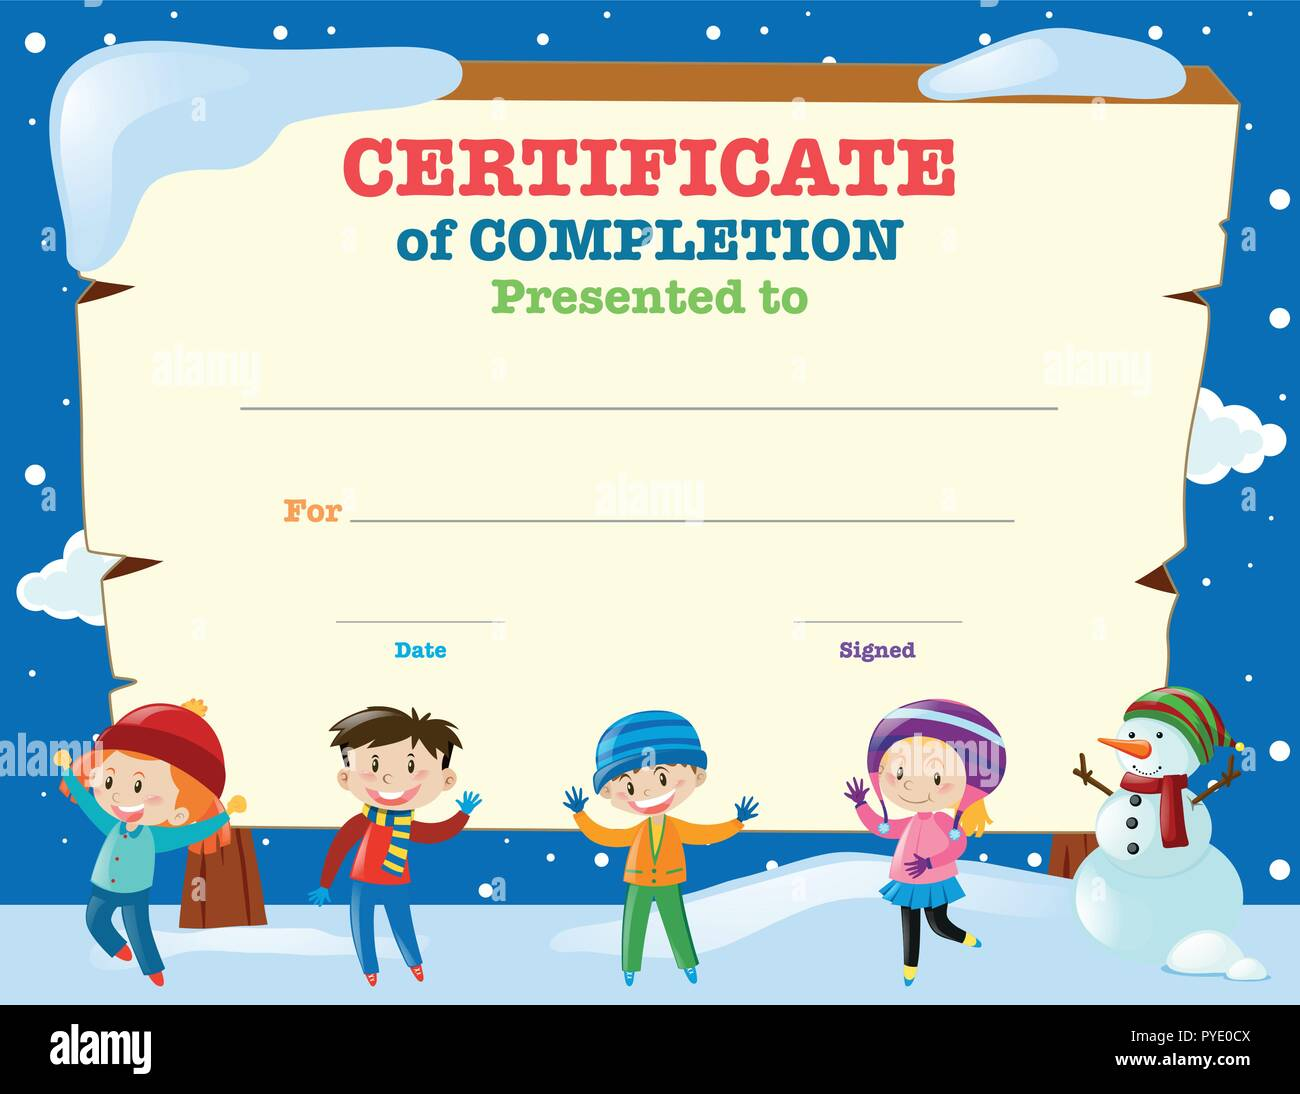 Certificate Template With Kids In The Snow Illustration Stock Vector